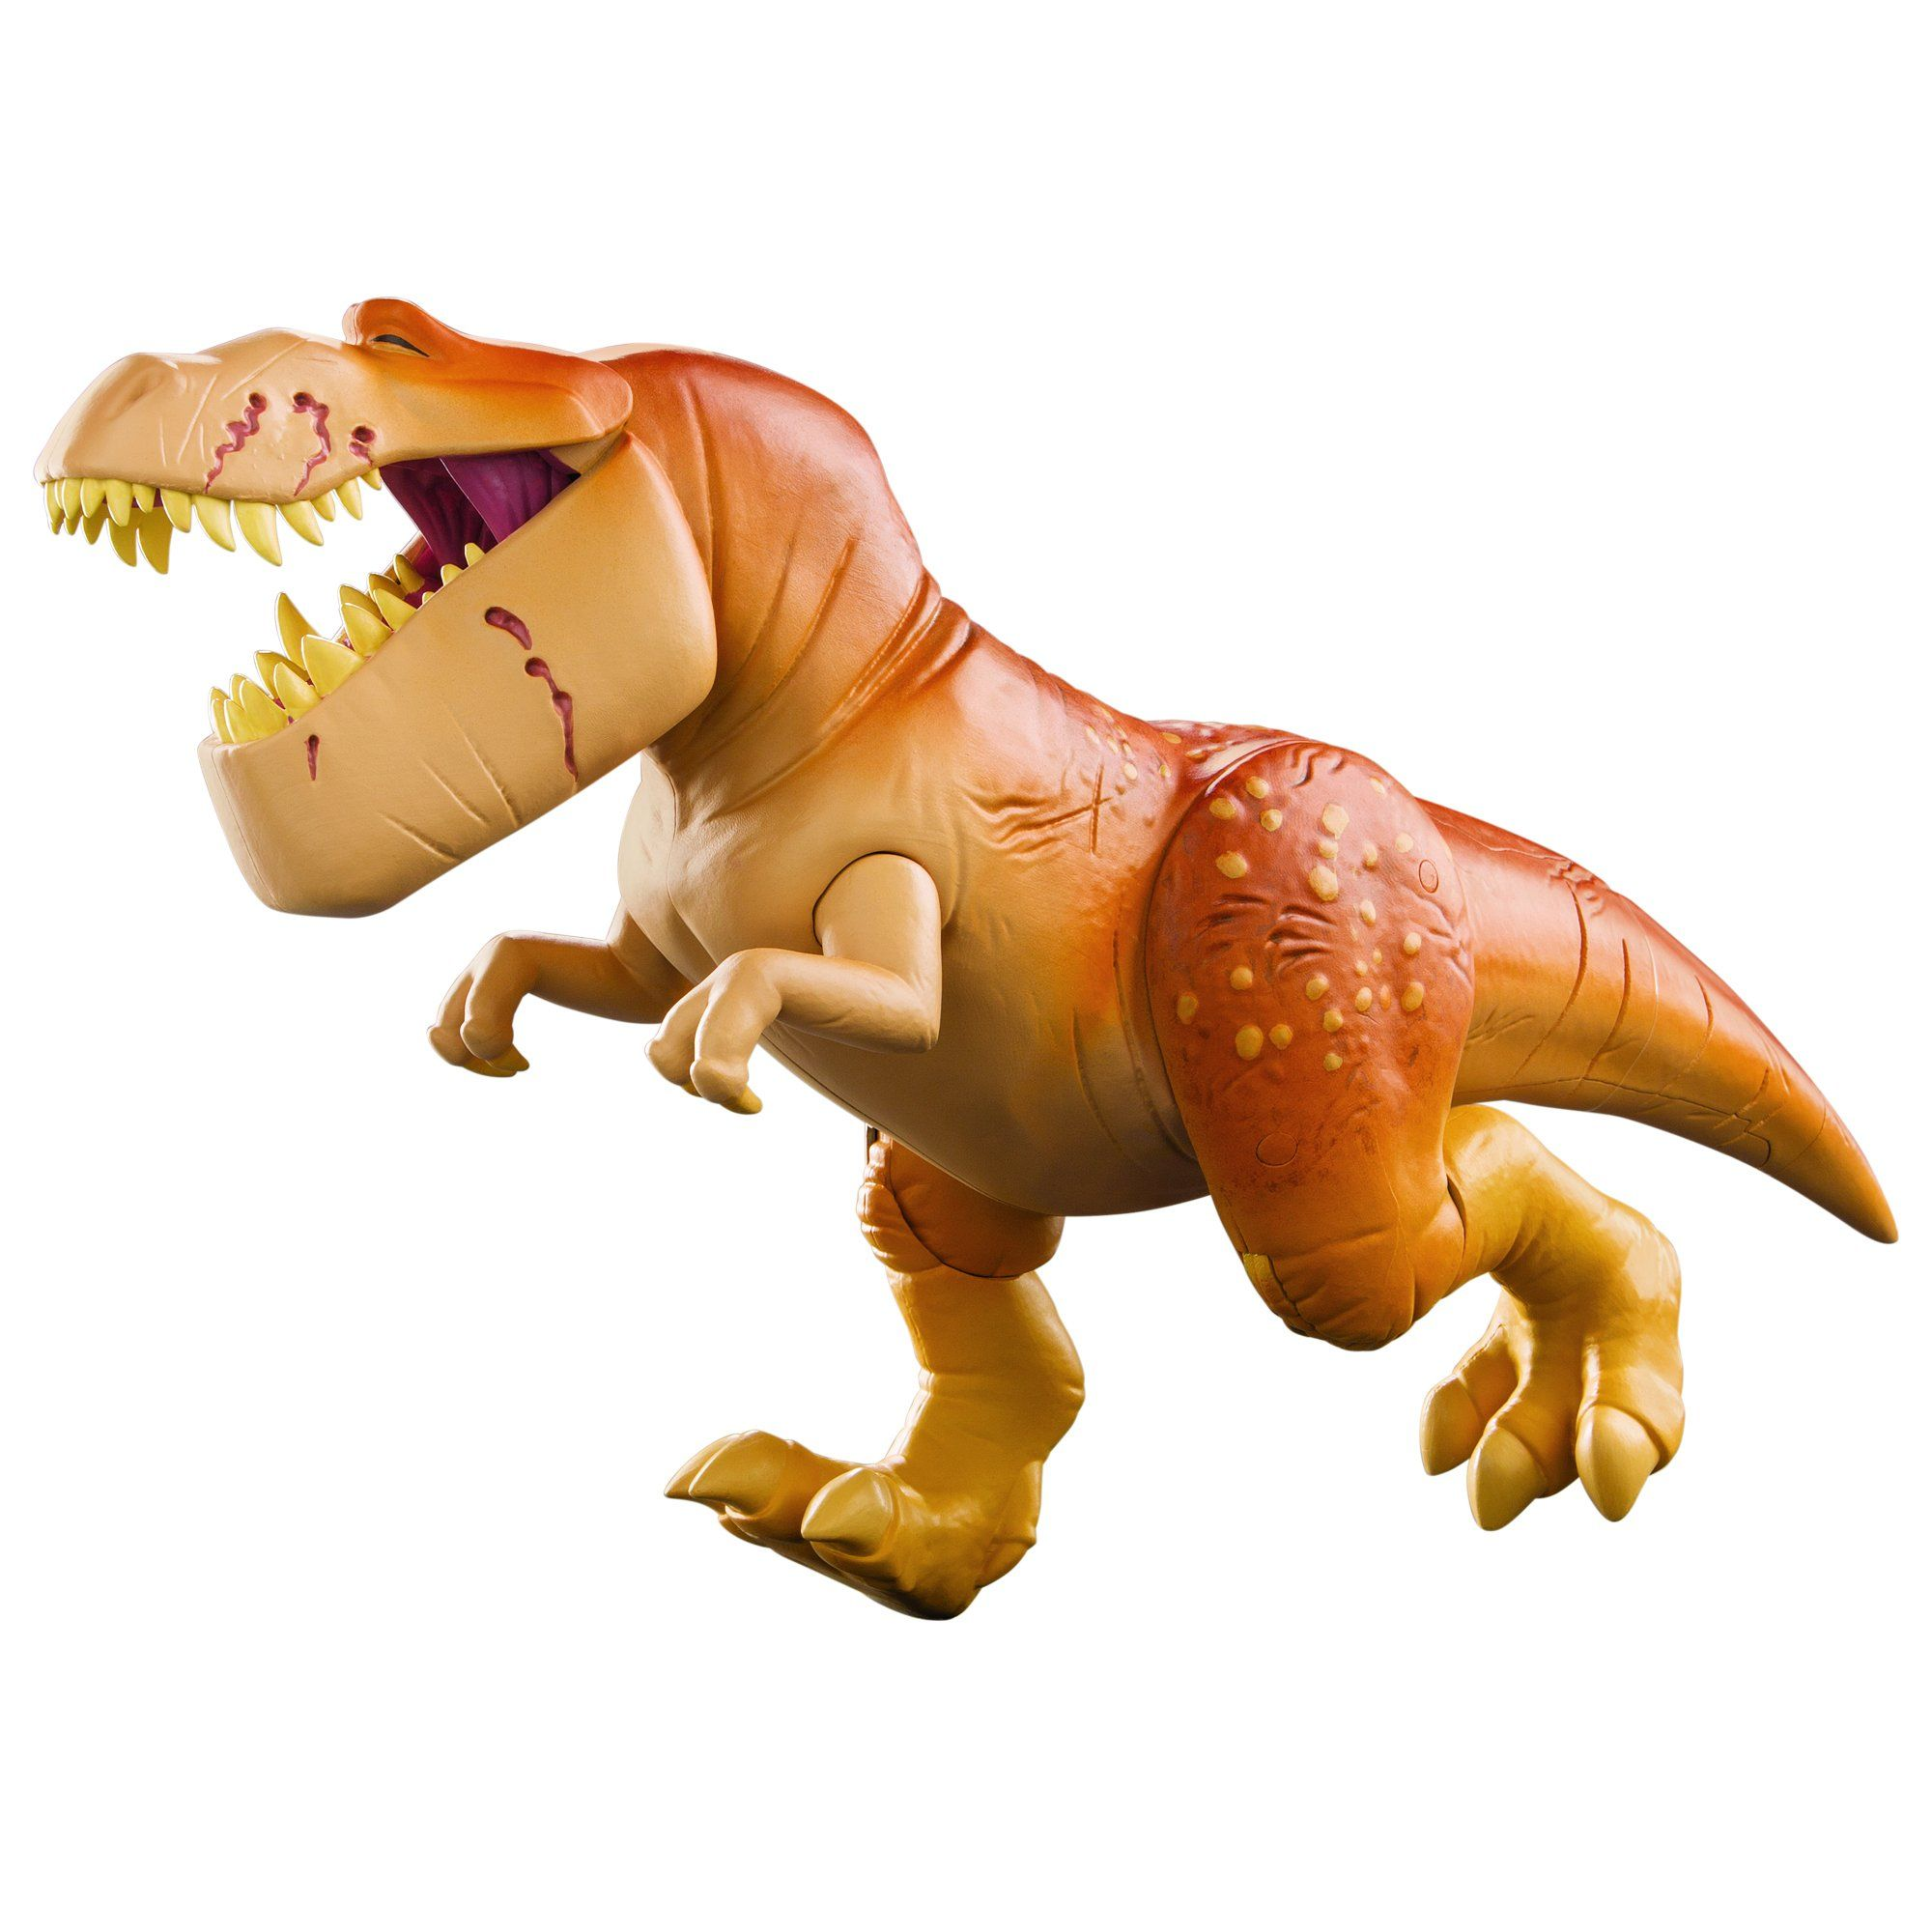 Image of: The Good Dinosaur Galloping Butch Pinterest The Good Dinosaur Galloping Butch Toys My Grandchildren Might Like